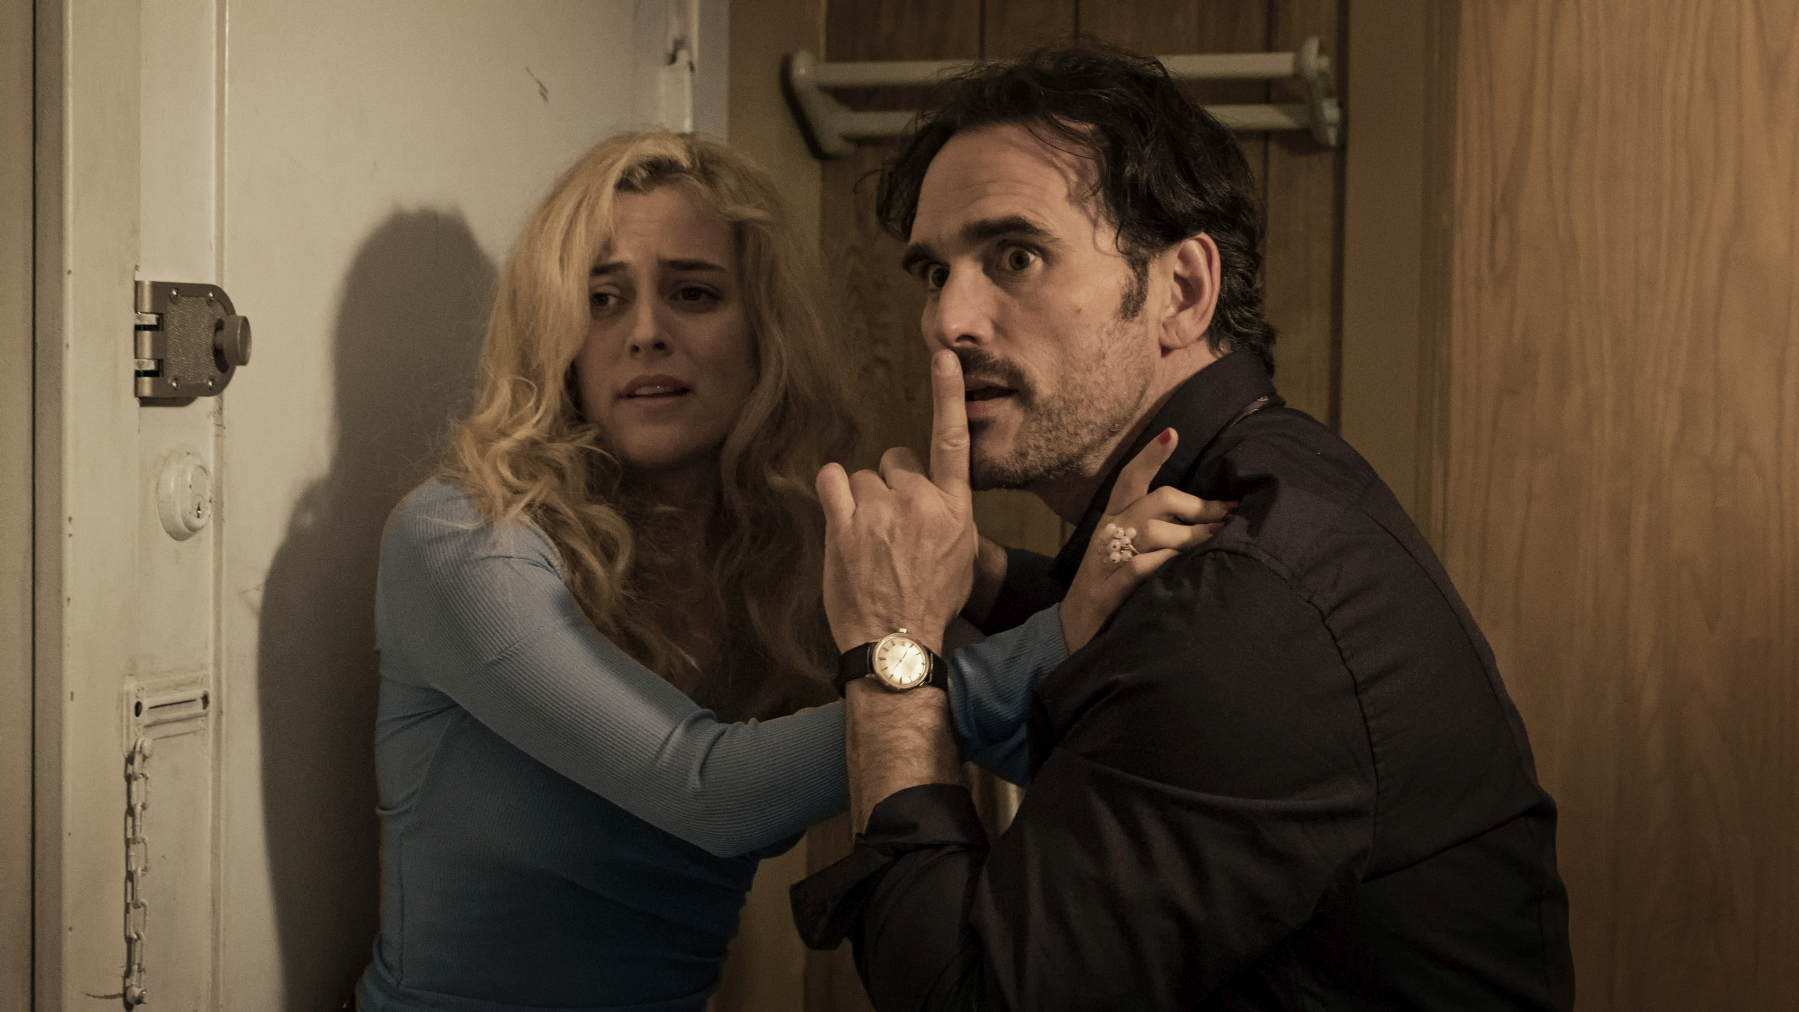 La casa di Jack: Matt Dillon e Riley Keough in una scena